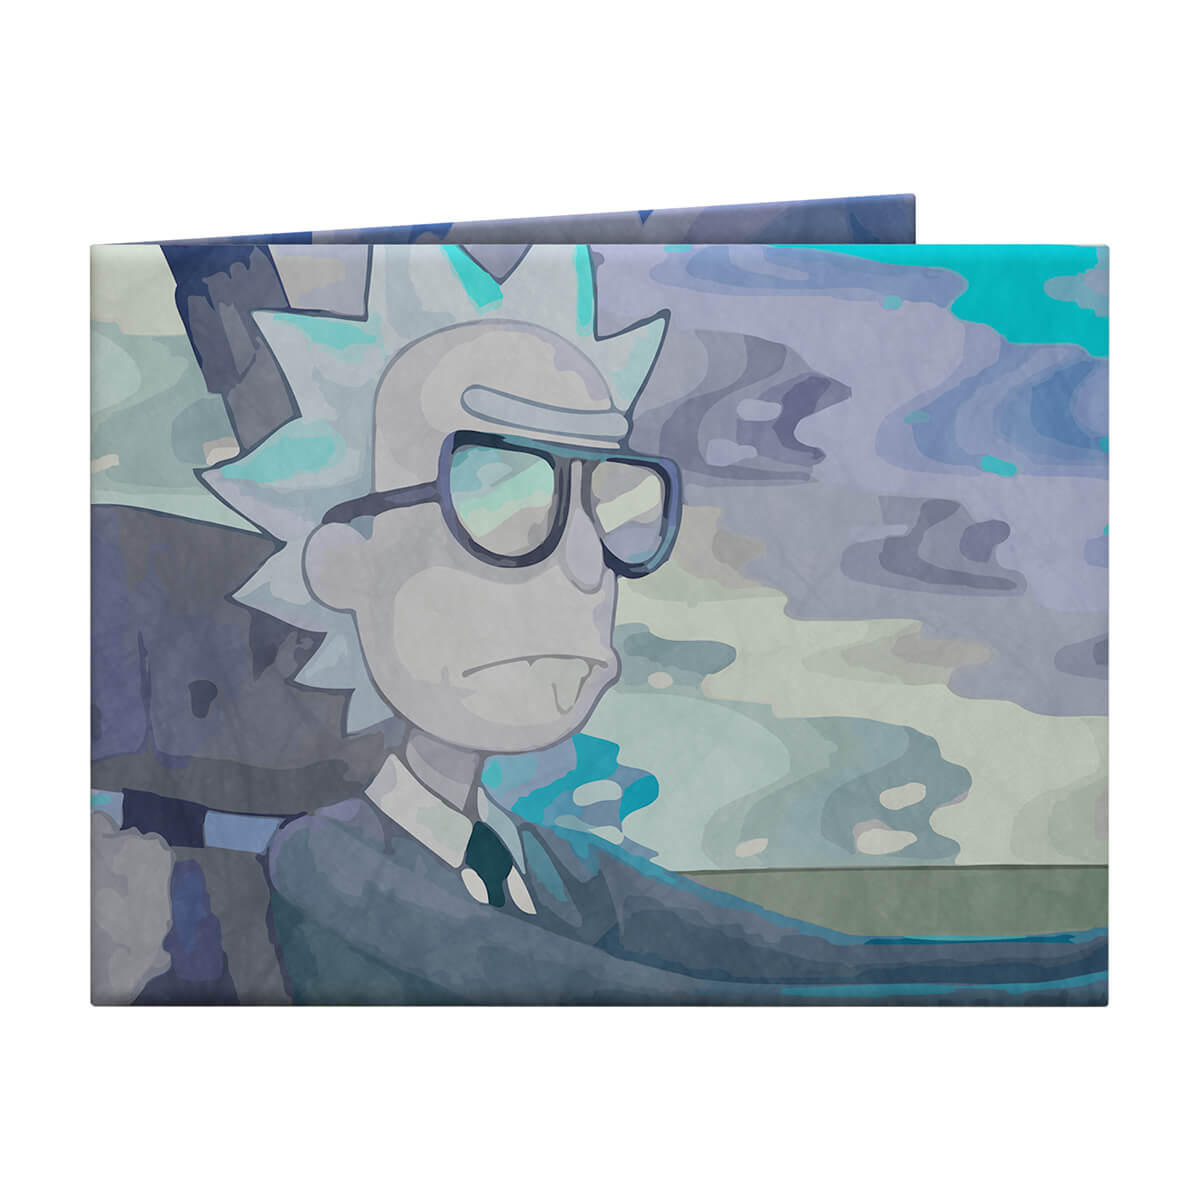 Carteira de Papel Tyvek Mick and Rorty